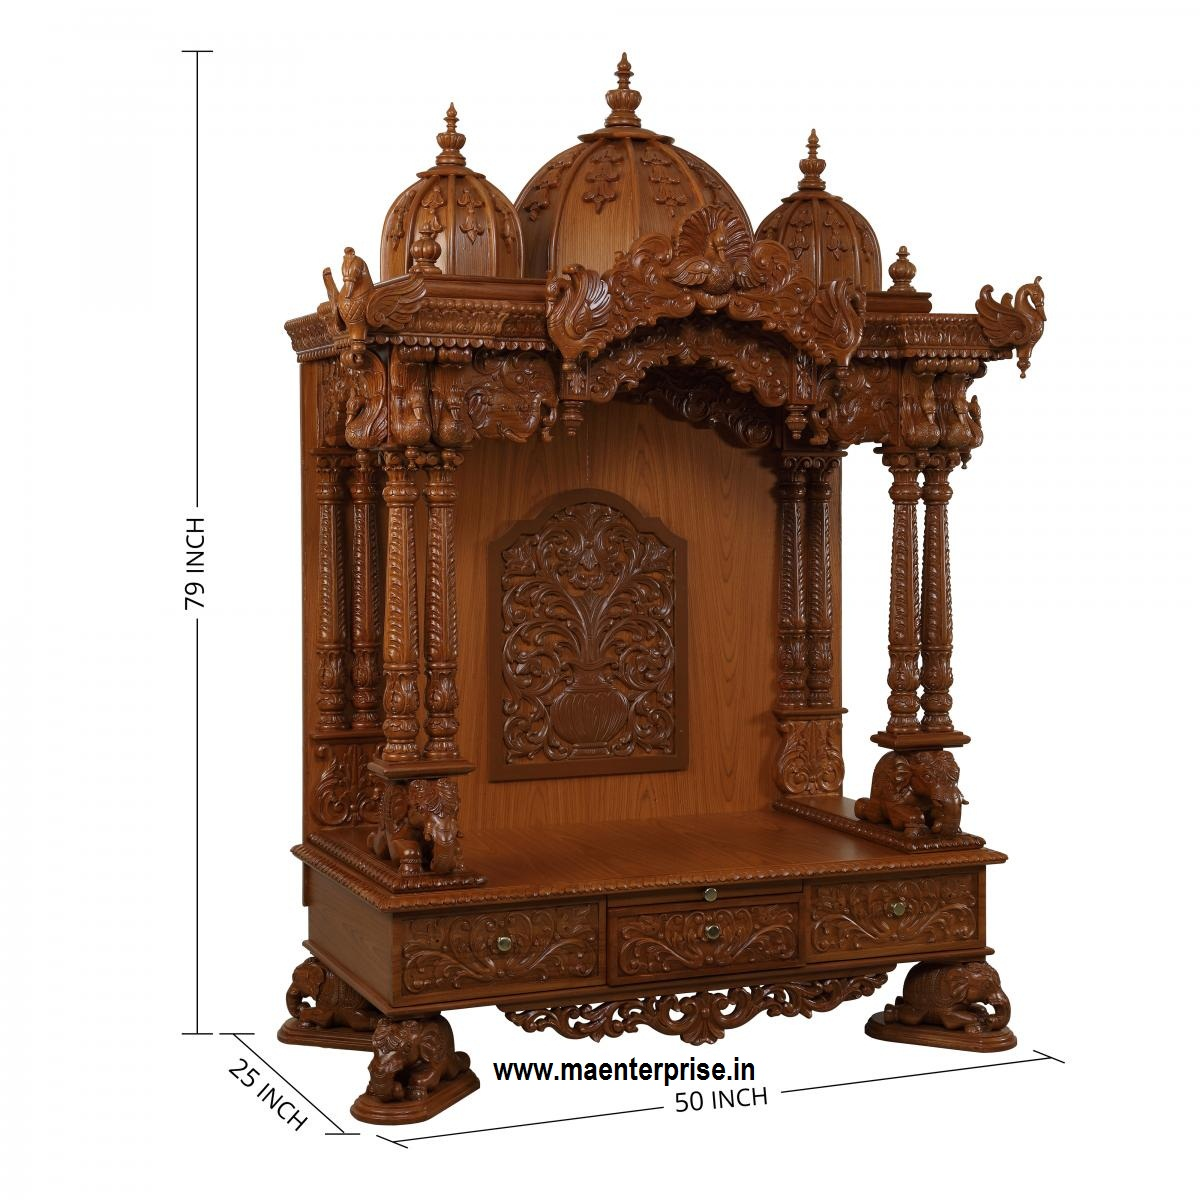 Wooden temple designs for home small temple for home wooden home - Wooden Temple For Home H 5ft L 4 Ft D 2 Ft Image Description